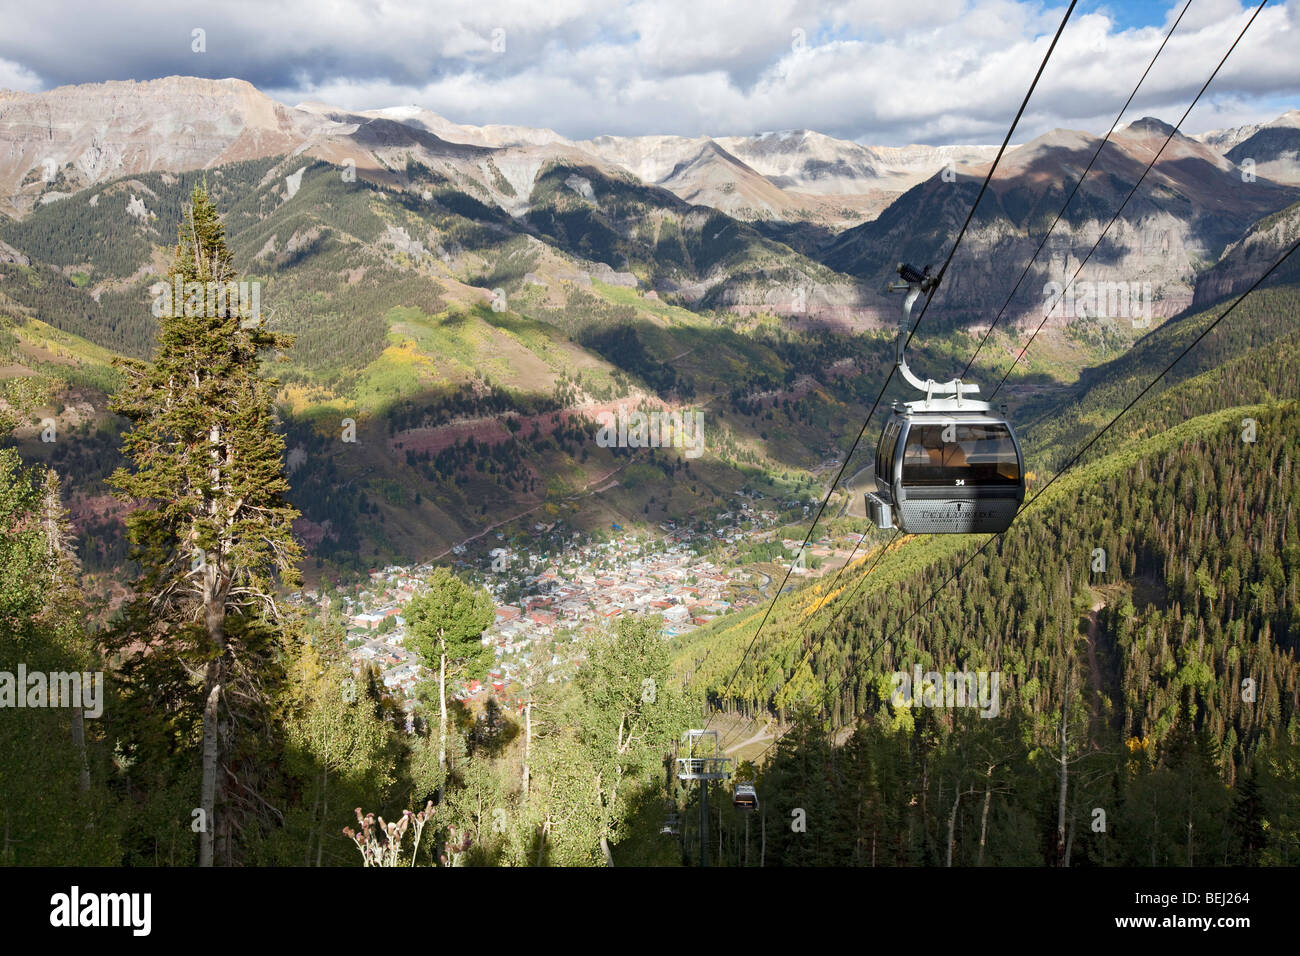 The free gondola and the town of Telluride below, Colorado - Stock Image